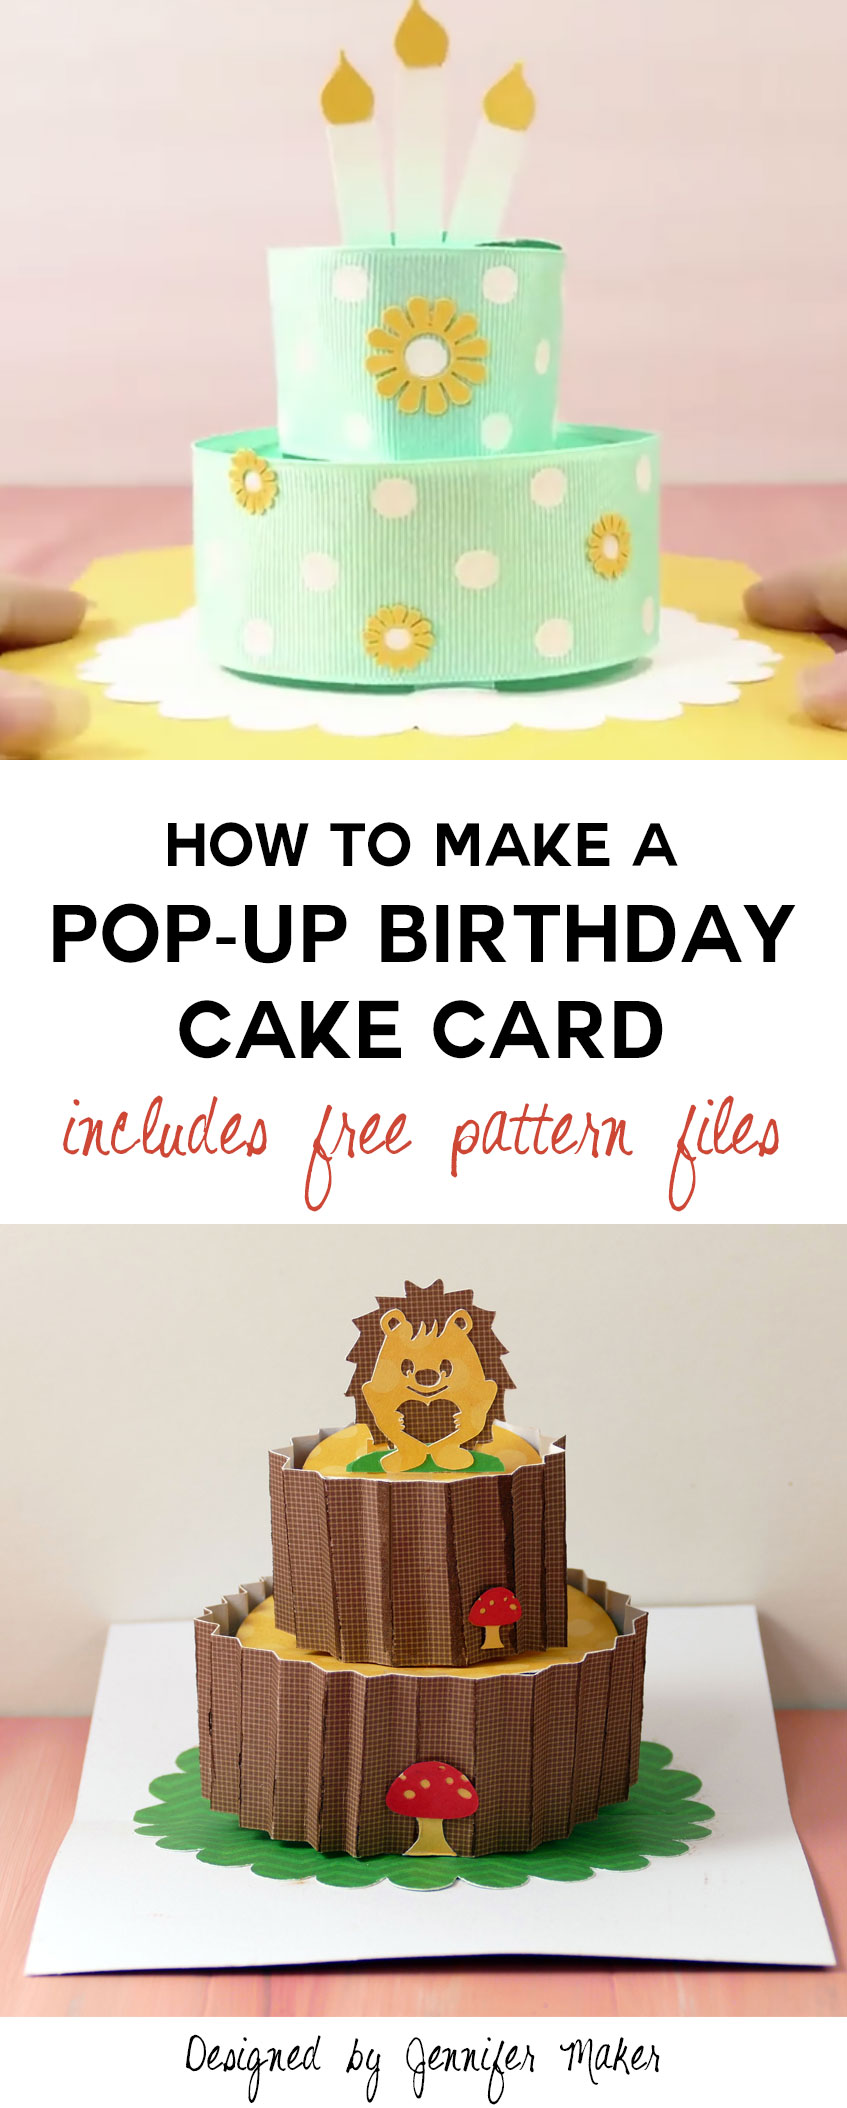 How to make a pop up birthday cake card jennifer maker make a pop up birthday cake card with free pattern and svg files bookmarktalkfo